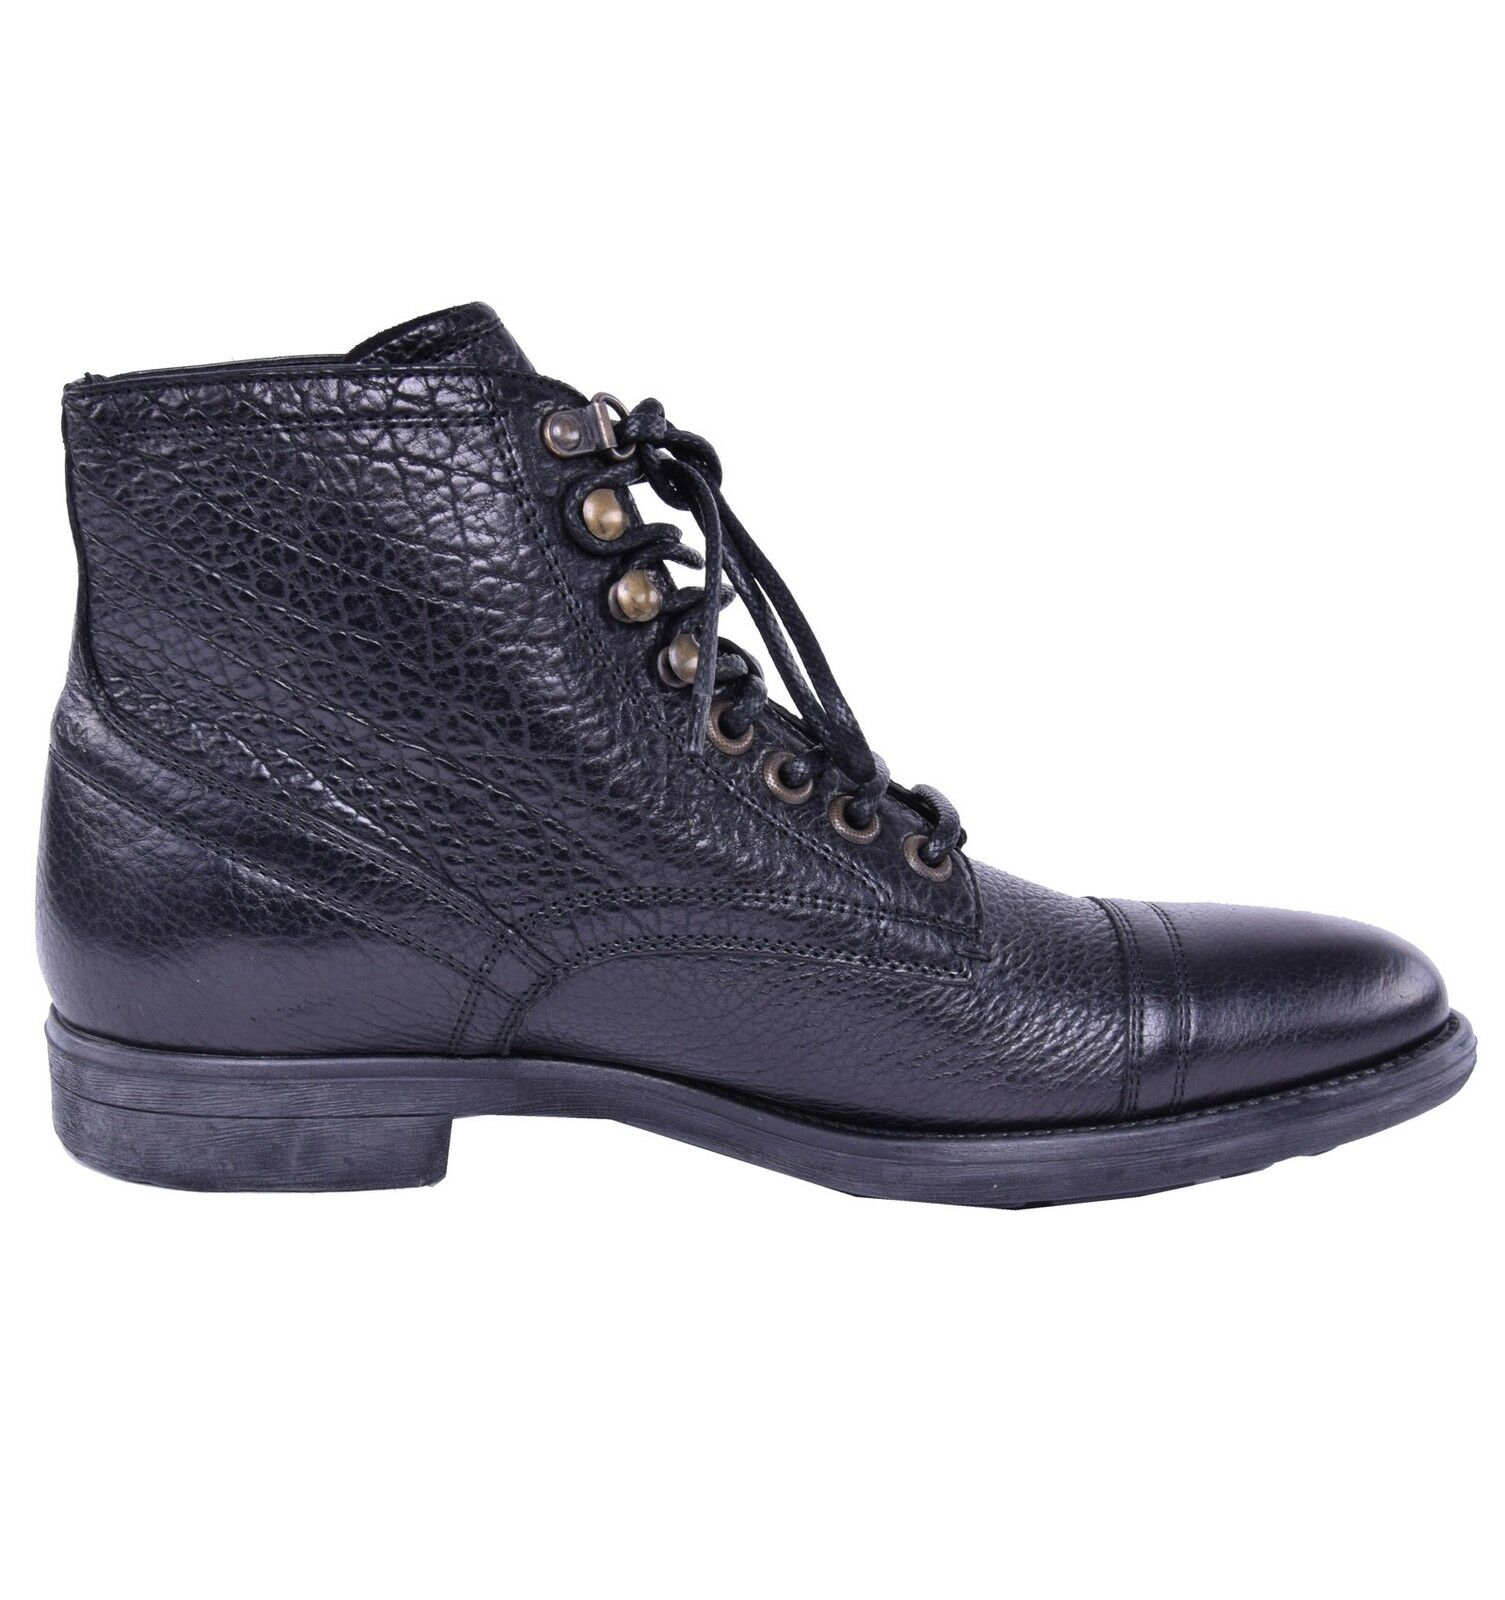 DOLCE & GABBANA Siracusa Bison Leather Boots Shoes Black 03834